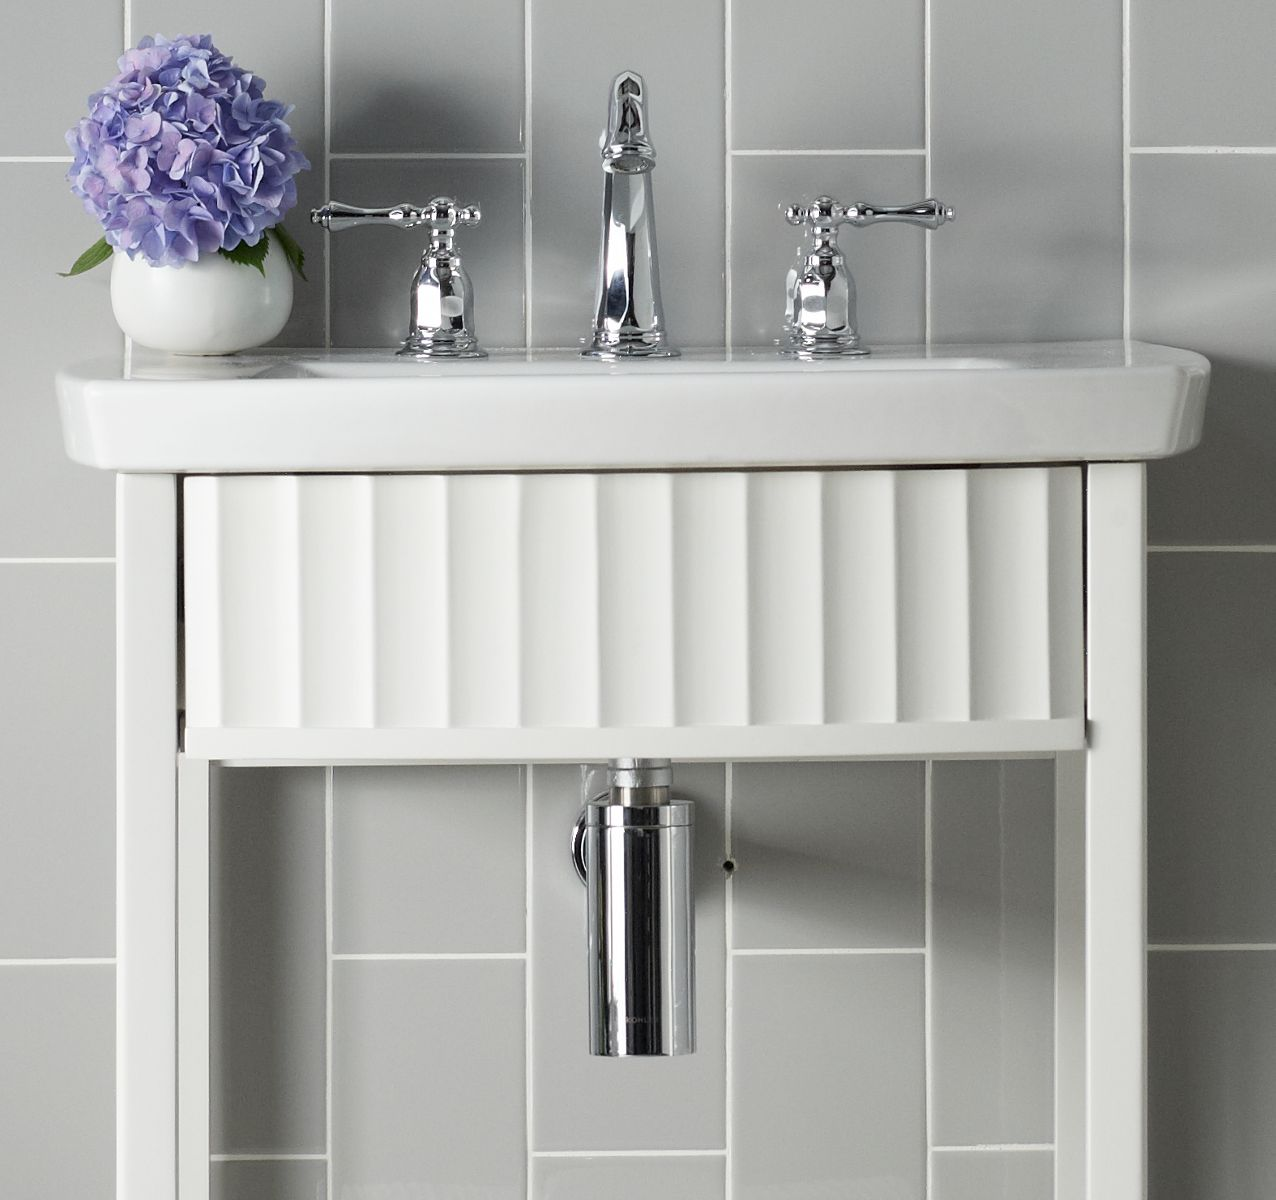 kelston - Bathroom Accessories Kohler